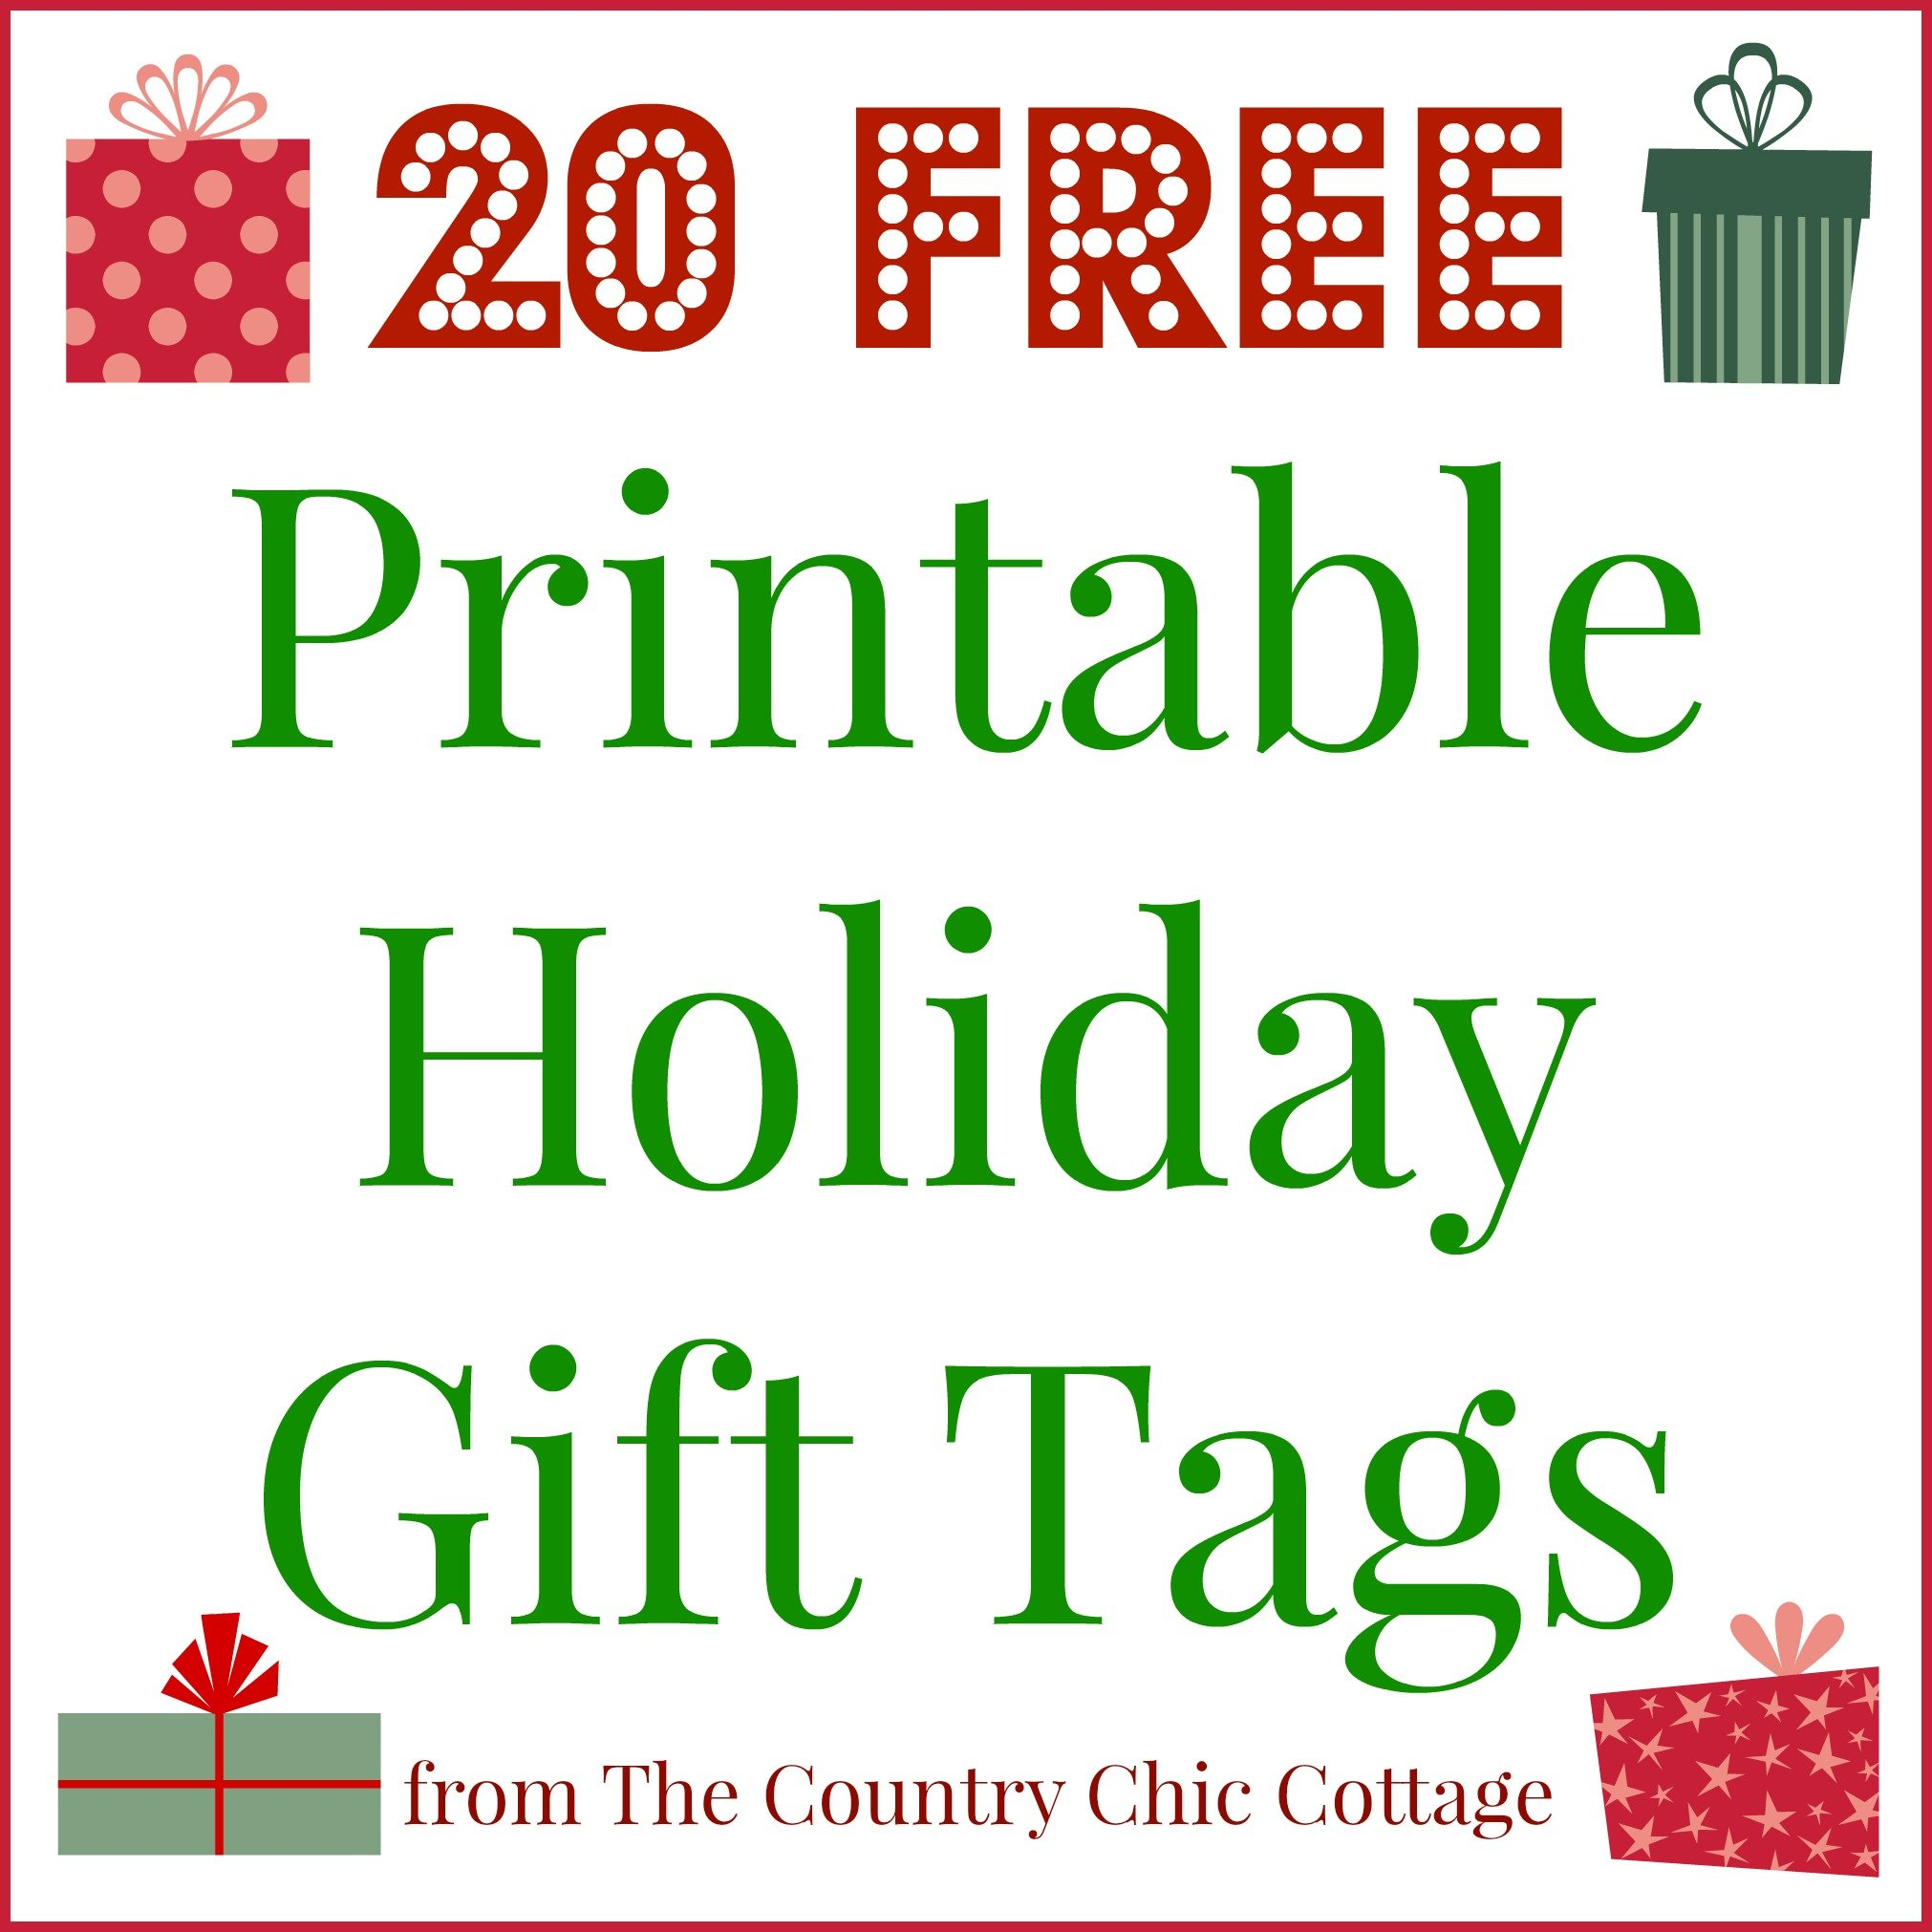 20 Printable Holiday Gift Tags (FOR FREE!!) - The Country Chic Cottage